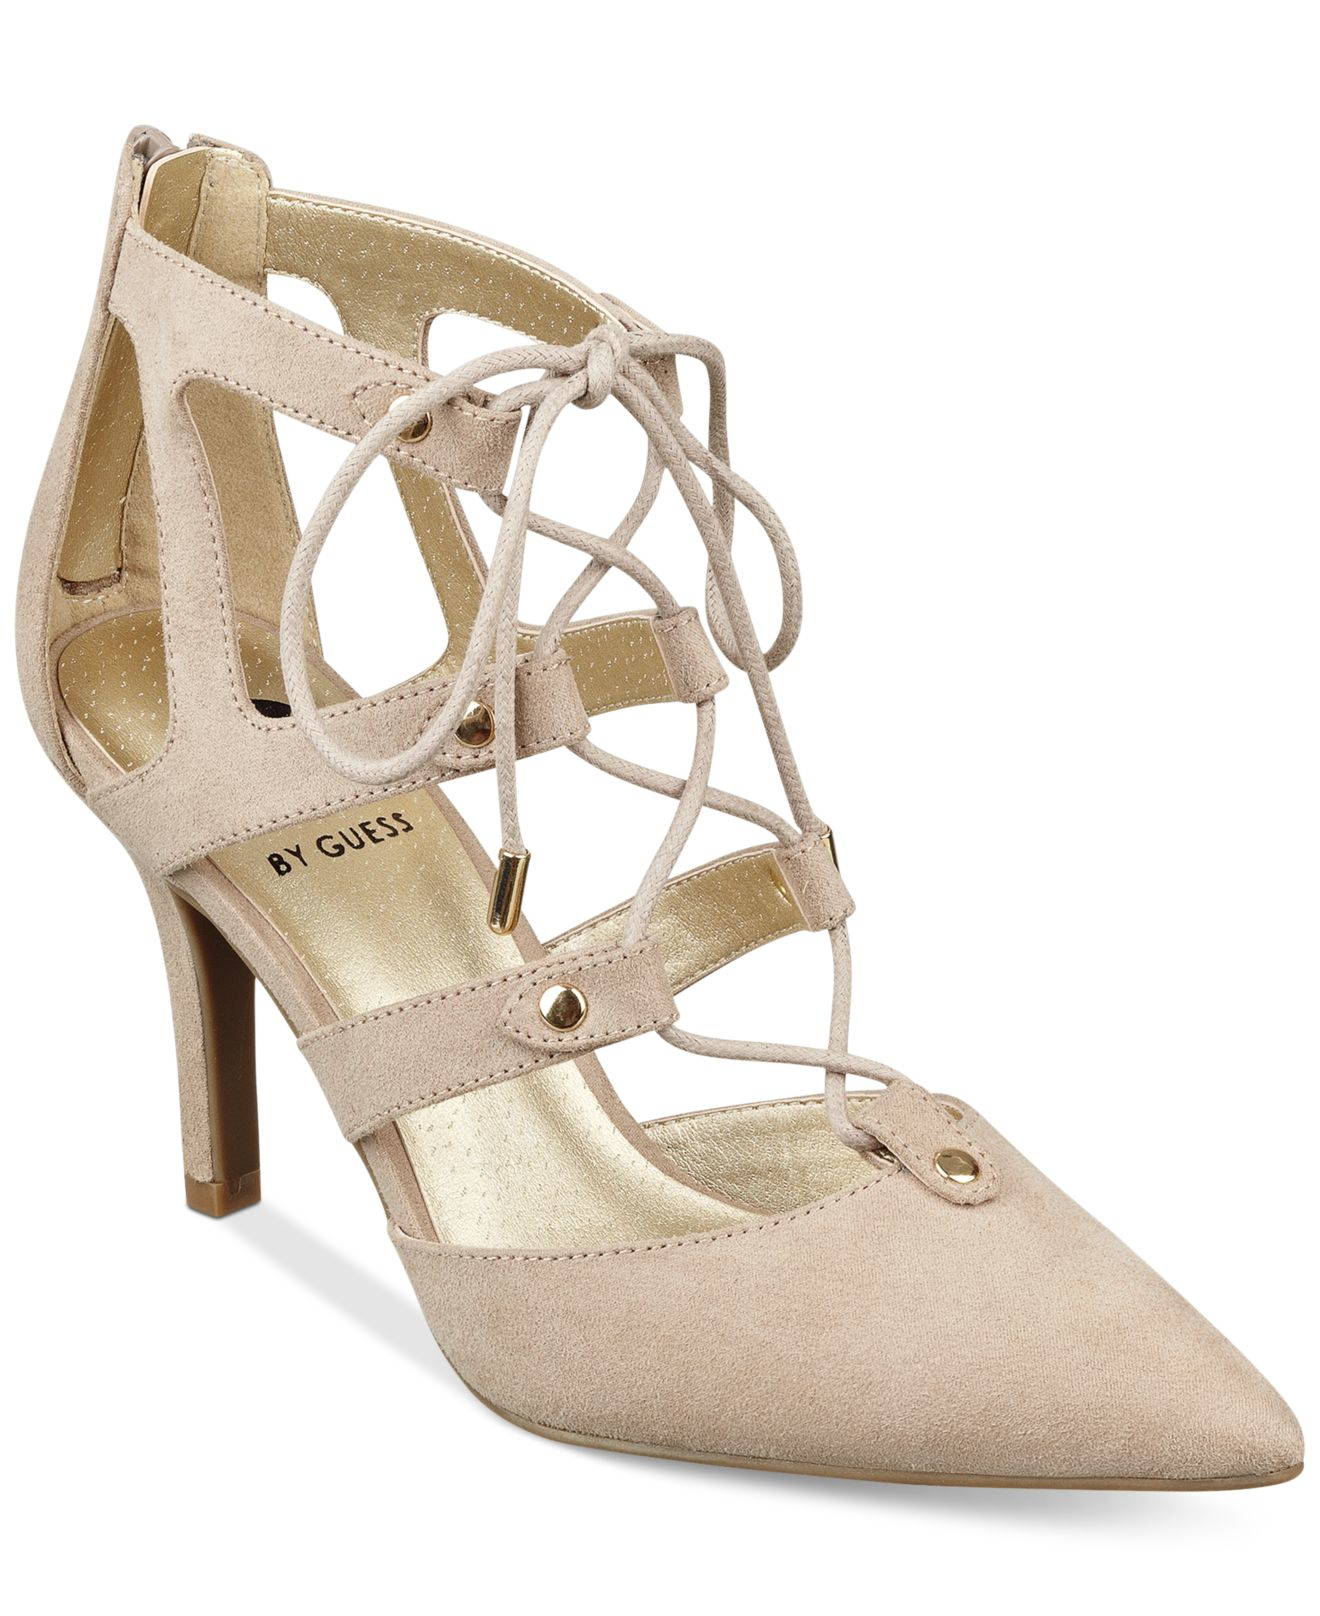 046331f05ac Lyst - G by Guess Krona Lace-up Pumps in Natural